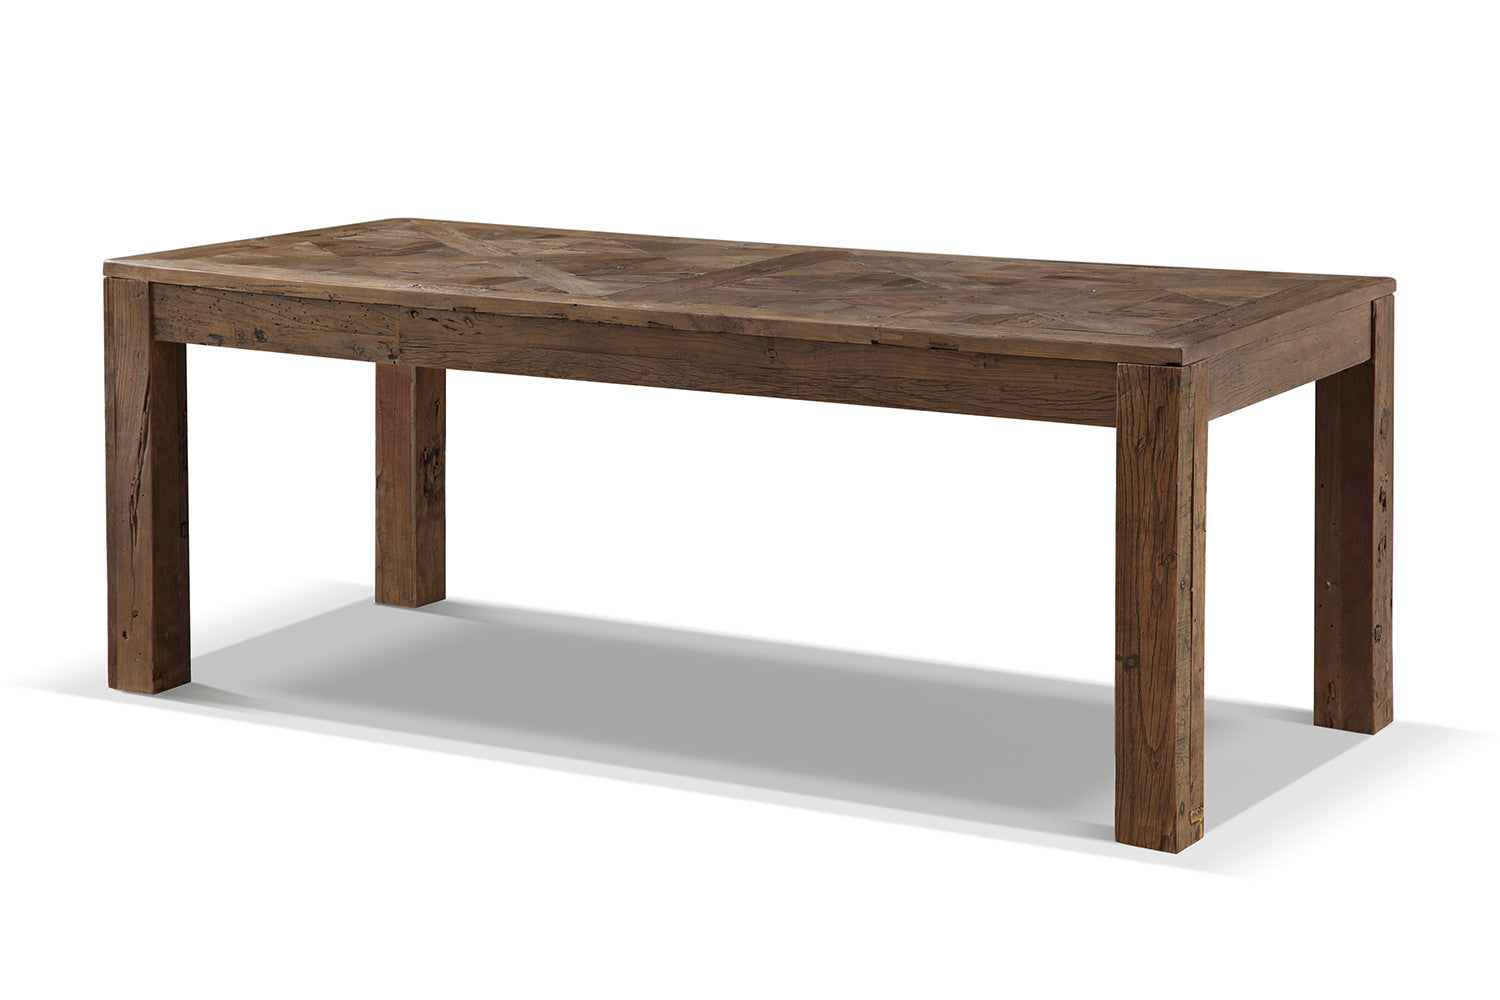 Table de salle manger rustique en bois brut rose moore Dimension table a manger